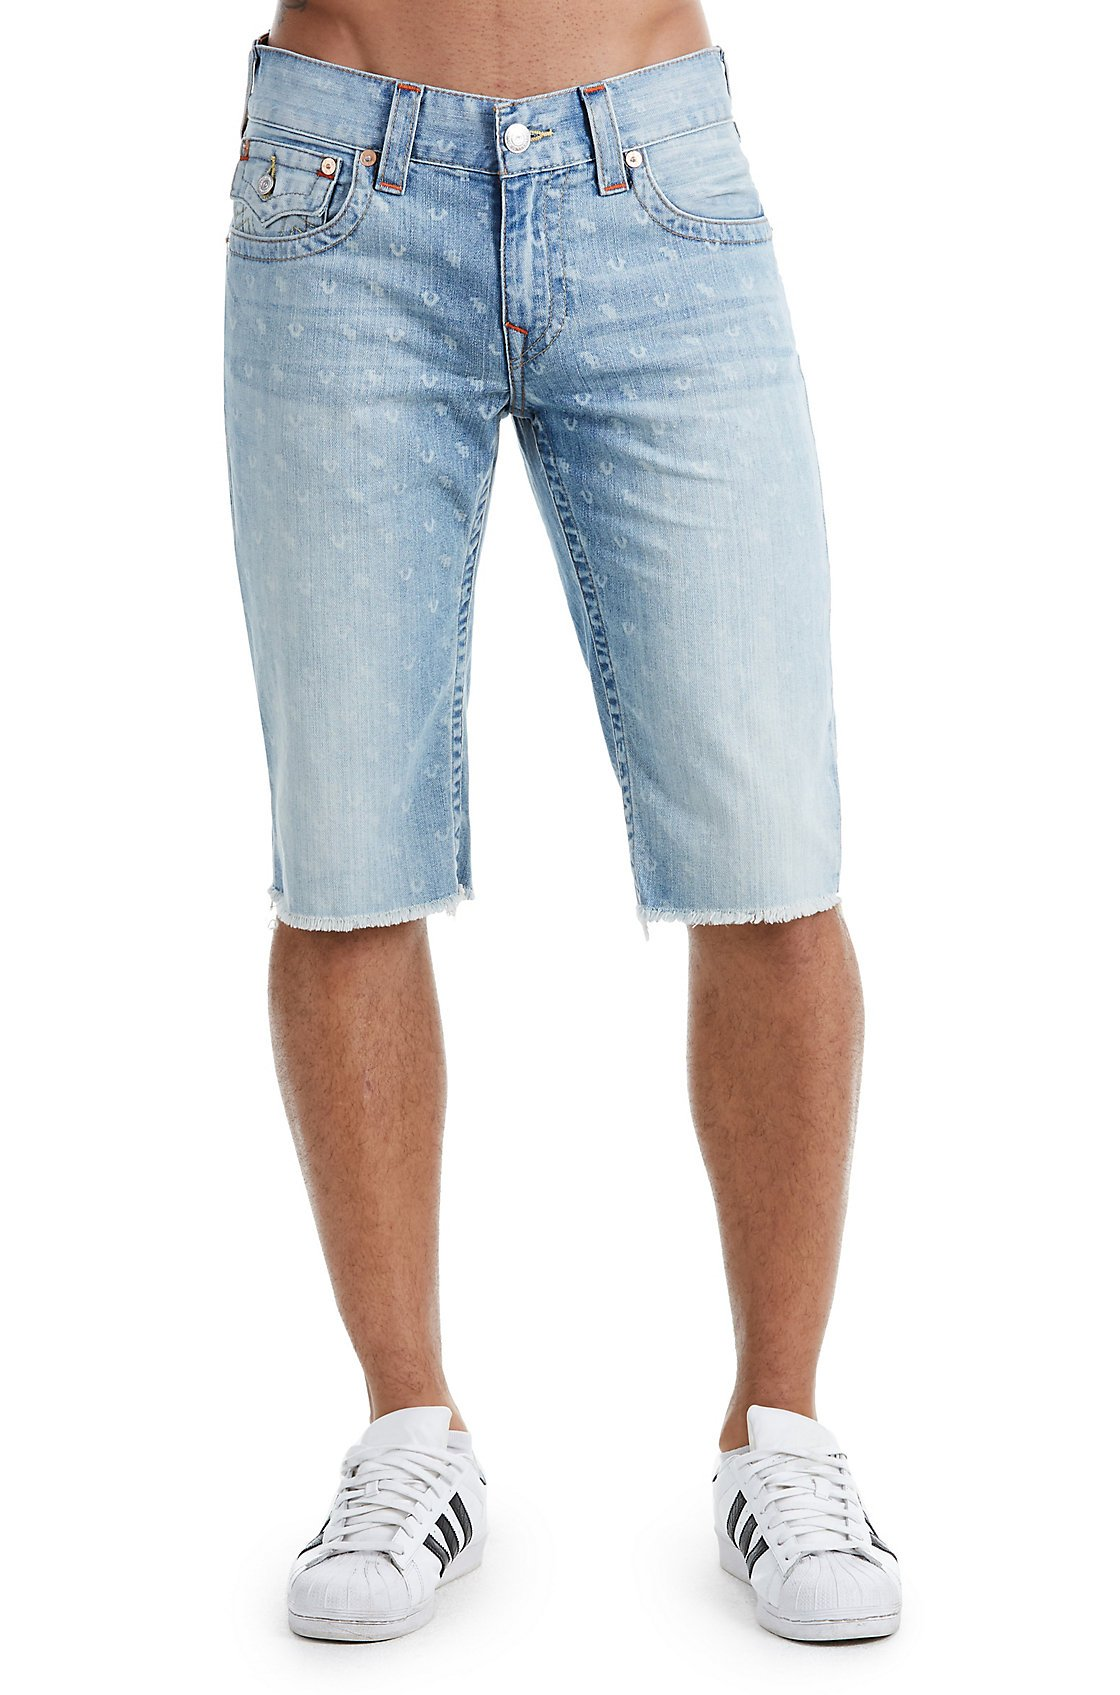 True Religion Men's Straight Denim Cut-Off Monogram Shorts w/Flaps In Chill Indigo (34)